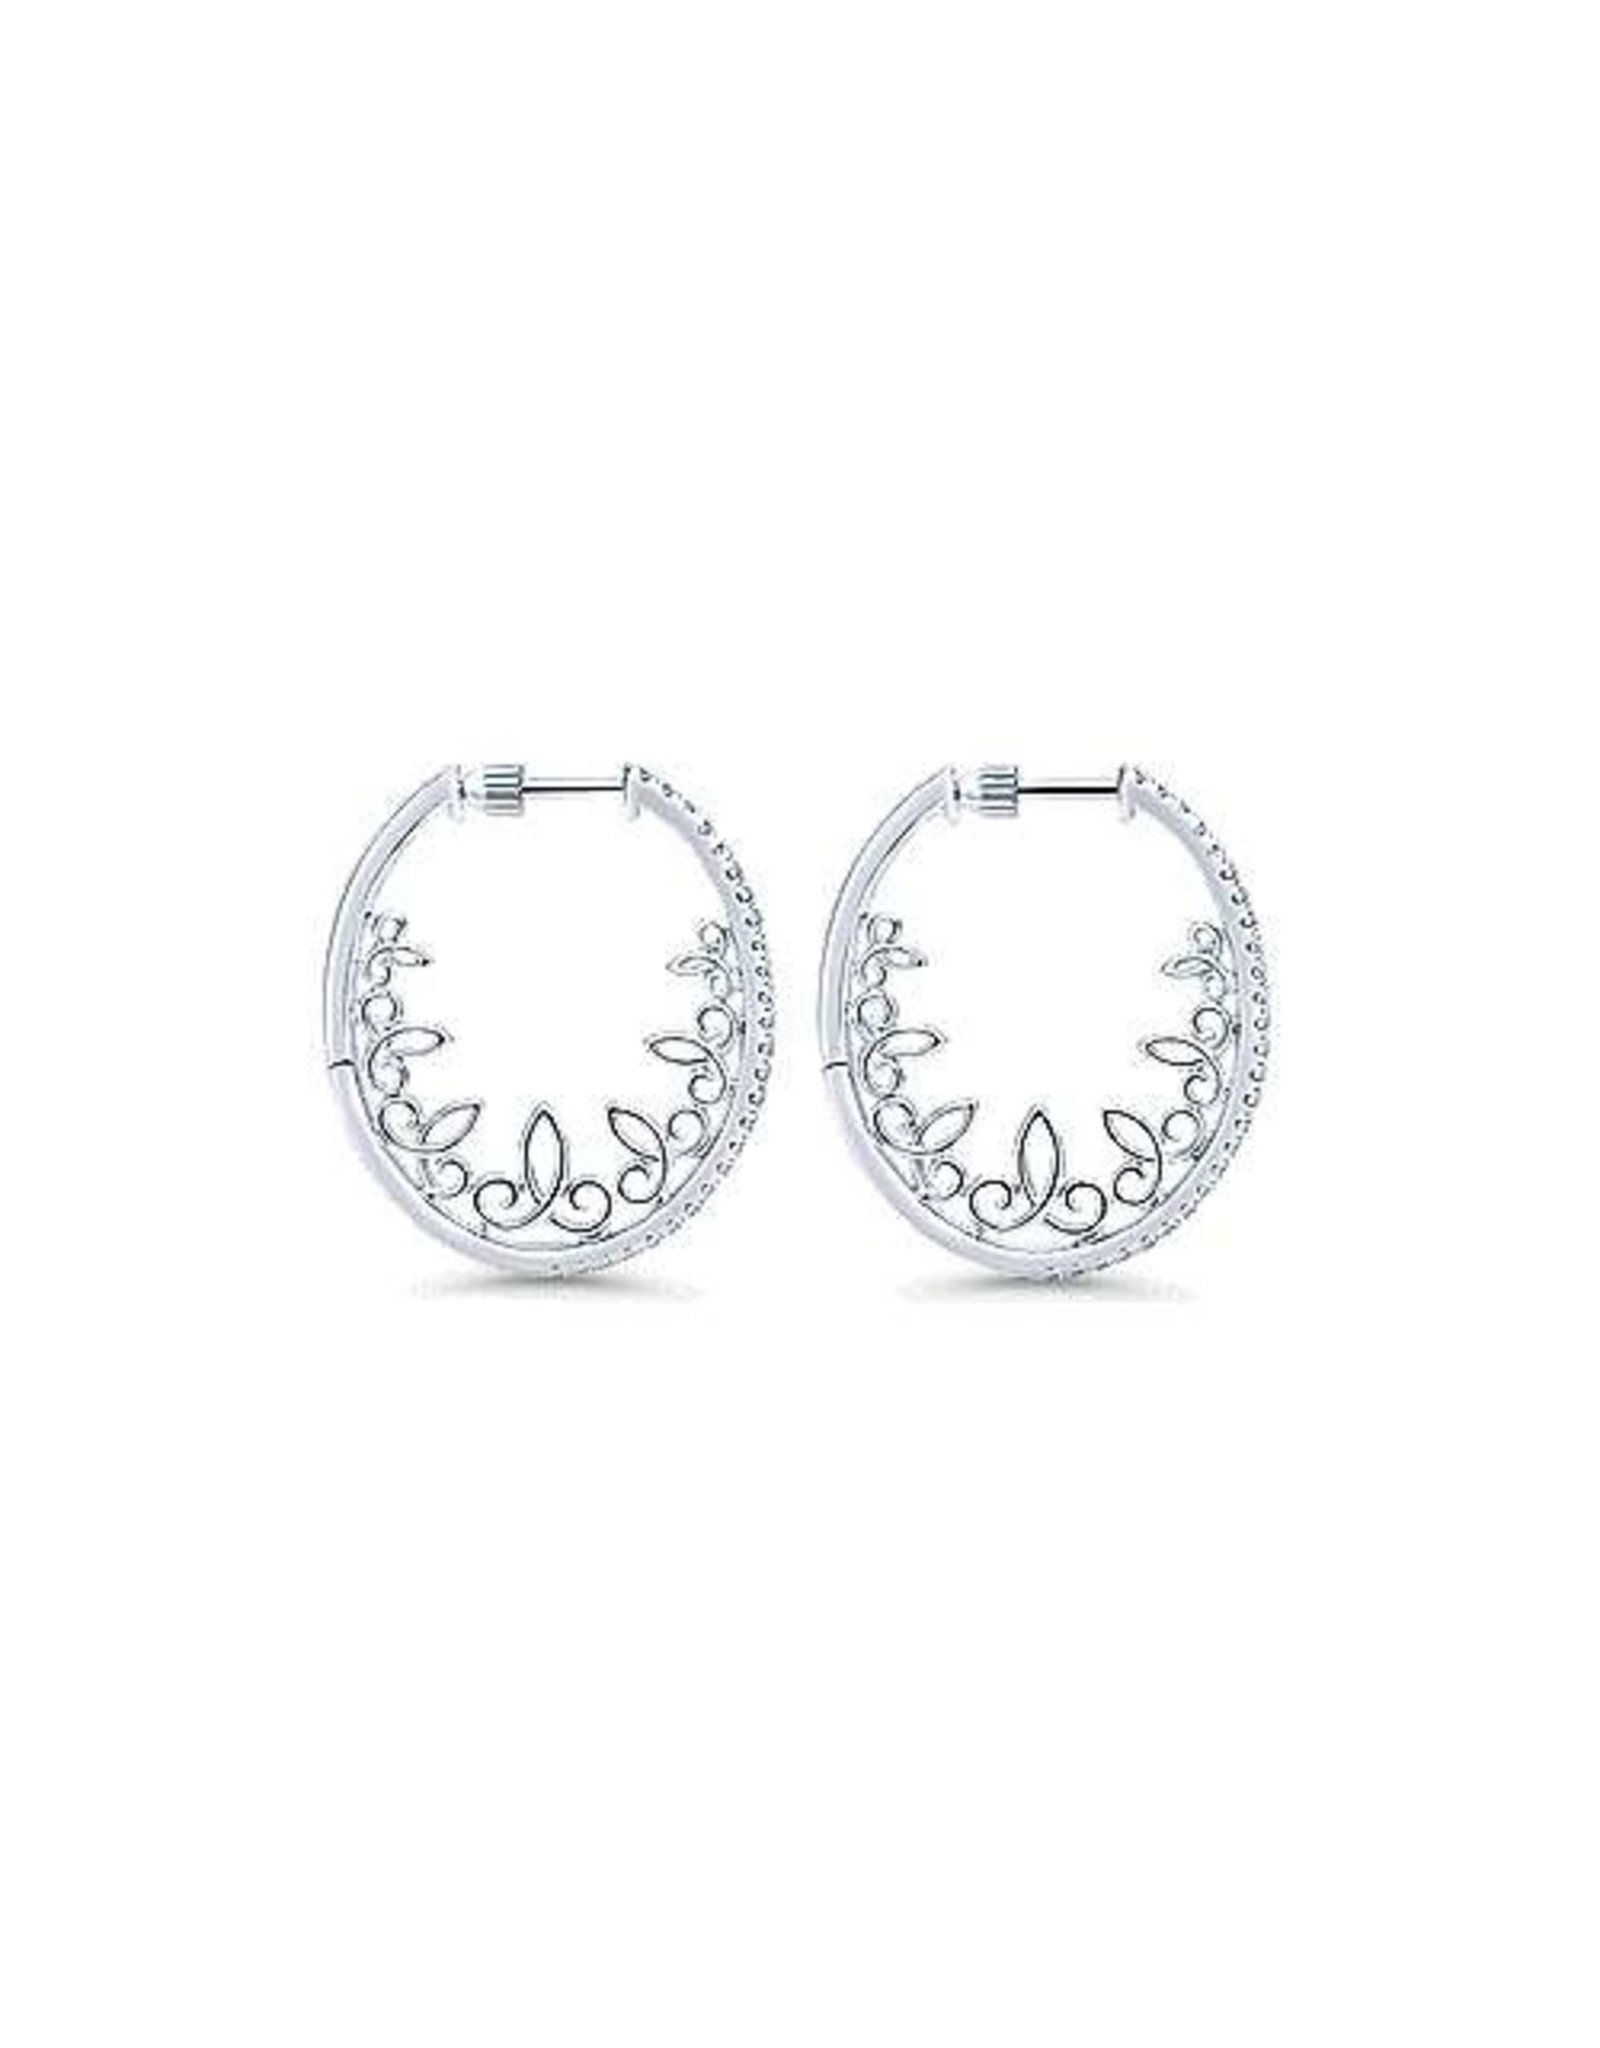 14K White Gold 30mm Intricate Diamond Hoop Earrings, D: 0.57ct